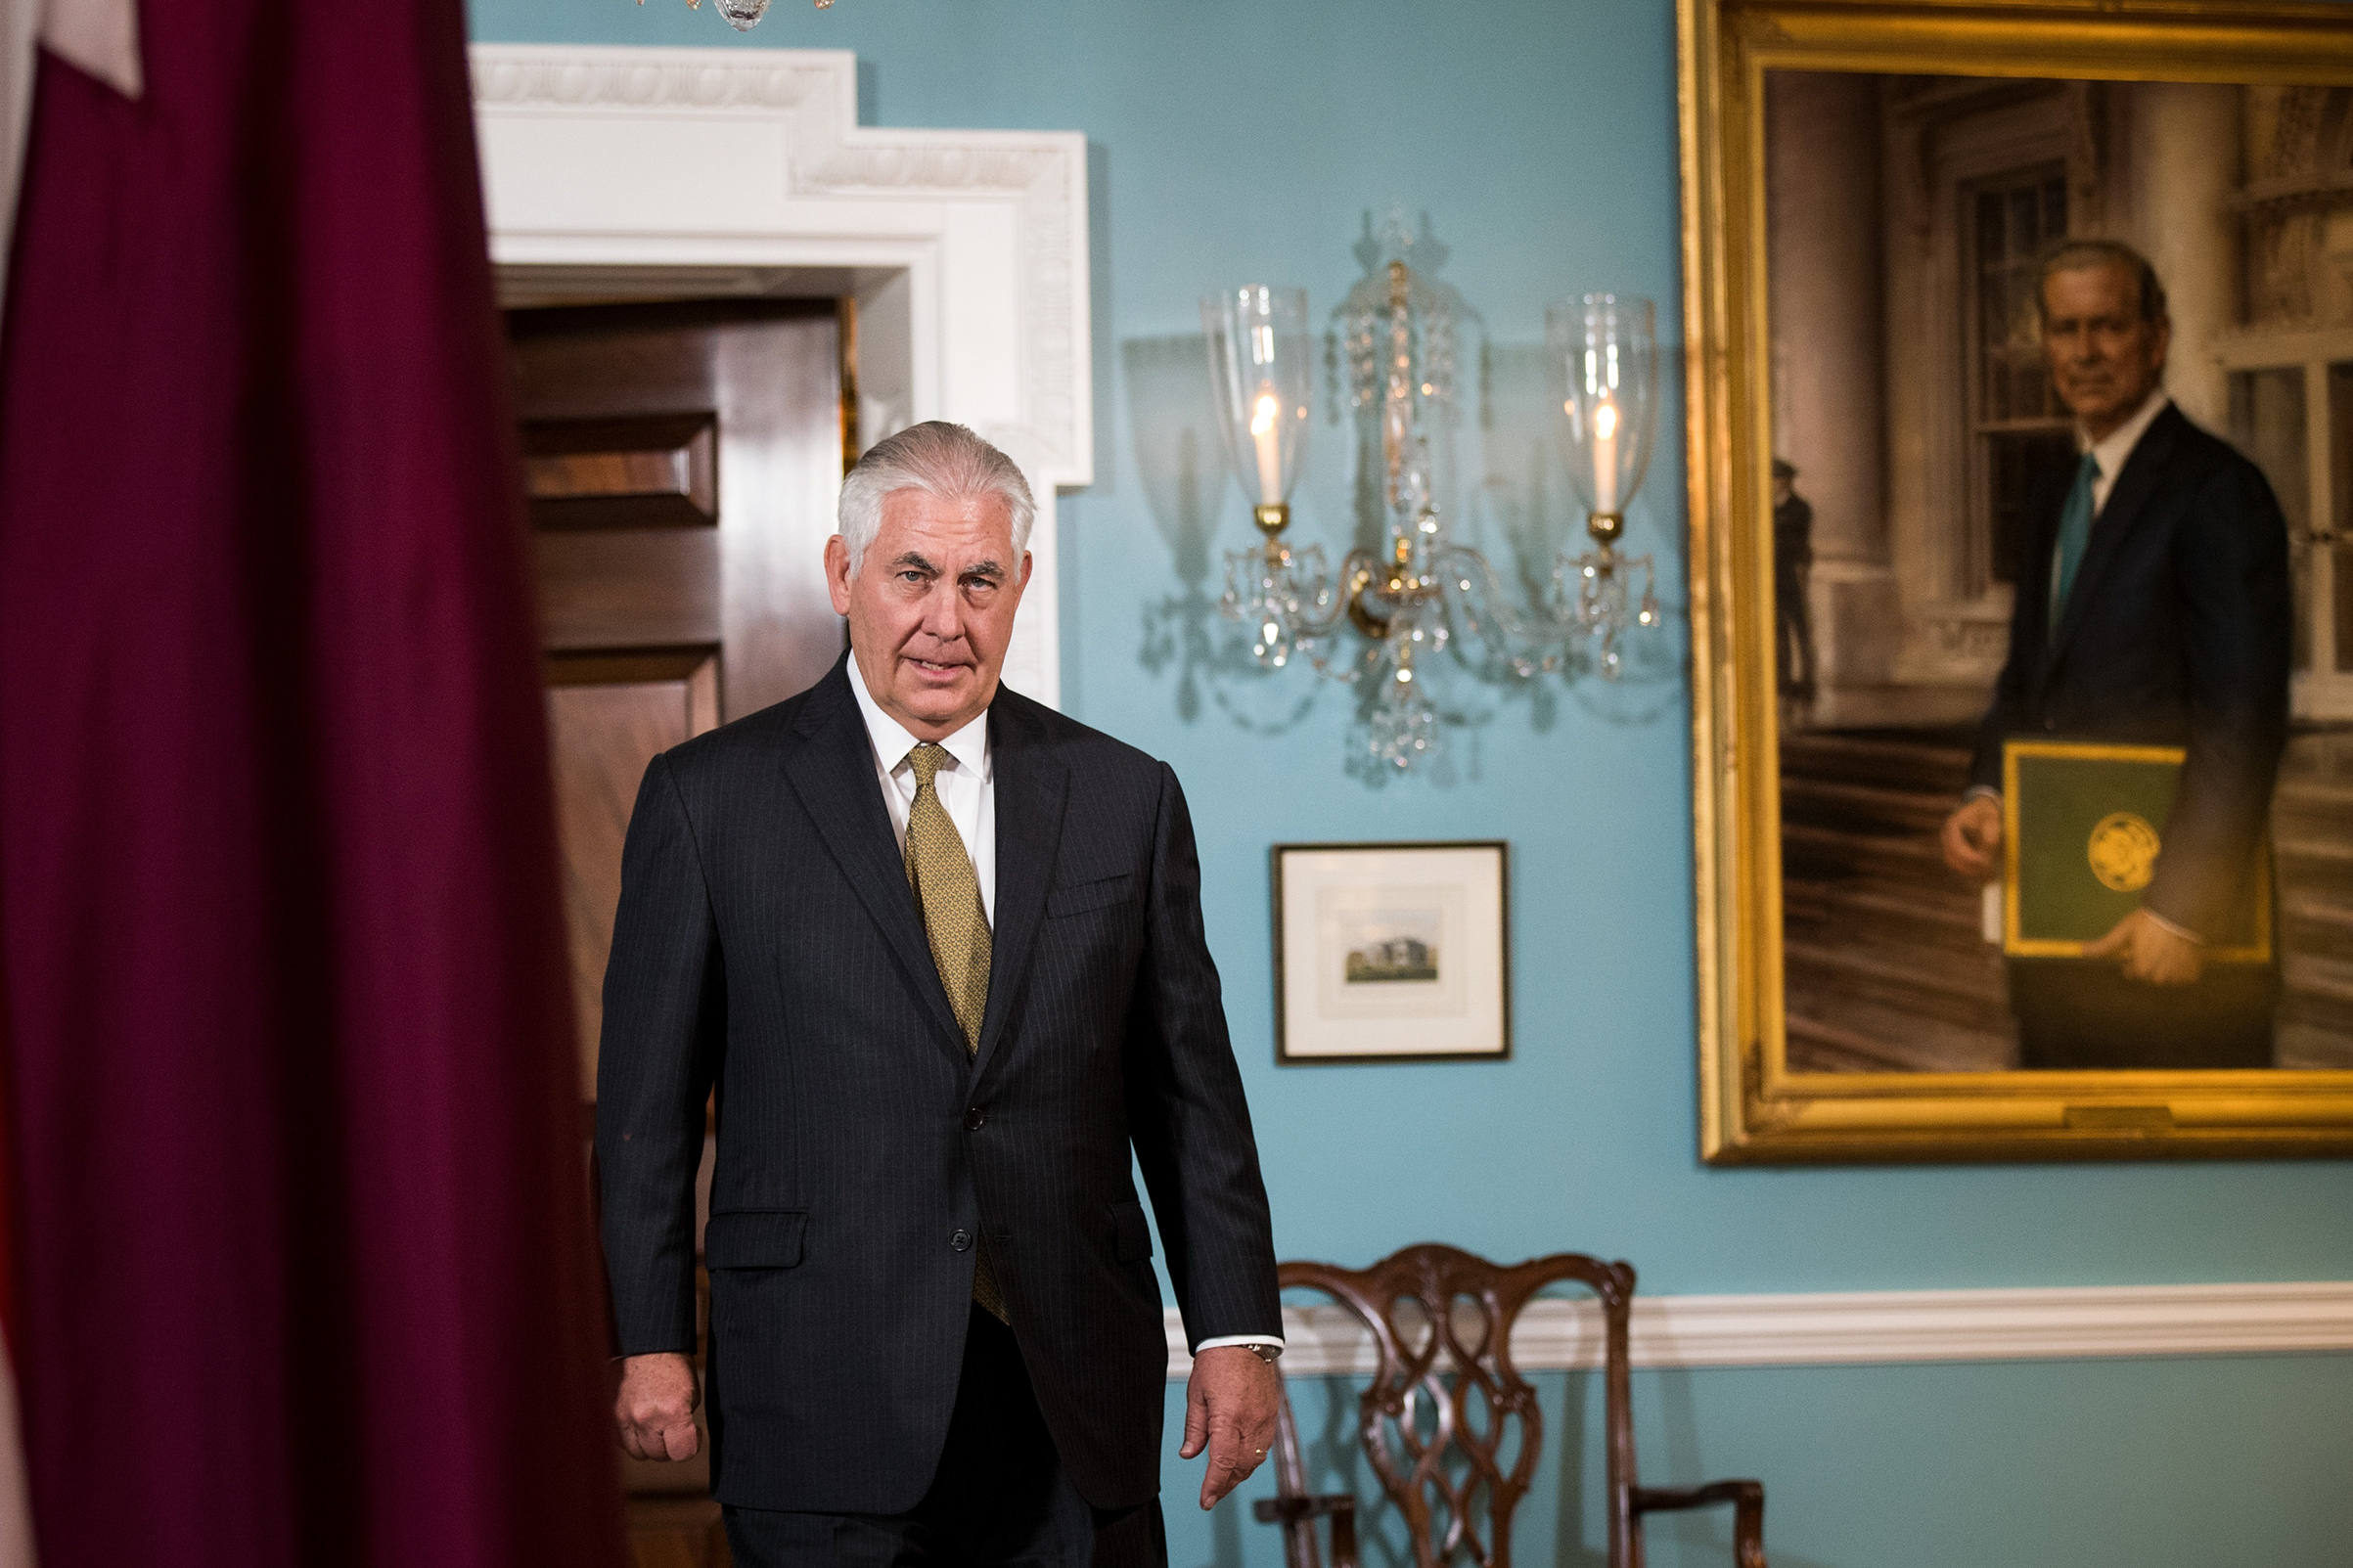 Secretary of State Rex Tillerson exits a brief media availability before his meeting with Qatari Foreign Minister Sheikh Mohammed Bin Abdulrahman Al Thani at the State Department, July 26, 2017 in Washington. When prompted by a reporter's question, Tillerson said 'I'm not going anywhere' and that he will stay on as Secretary of State 'as long as the president lets me.'